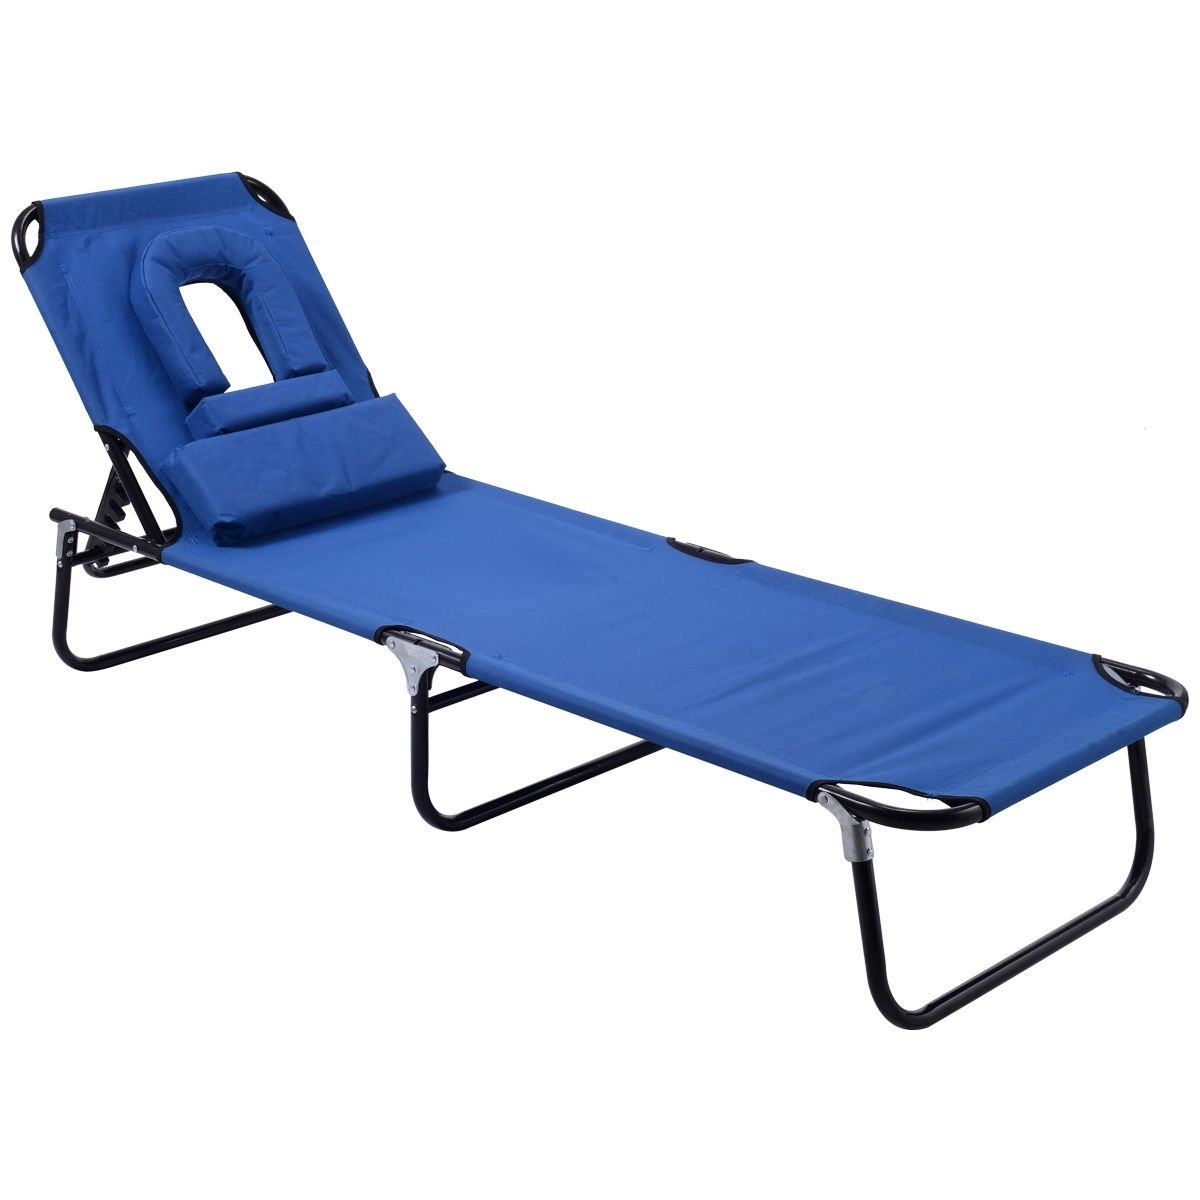 Ostrich Chaise Lounges Within Preferred Amazon: Goplus Folding Chaise Lounge Chair Bed Outdoor Patio (View 11 of 15)